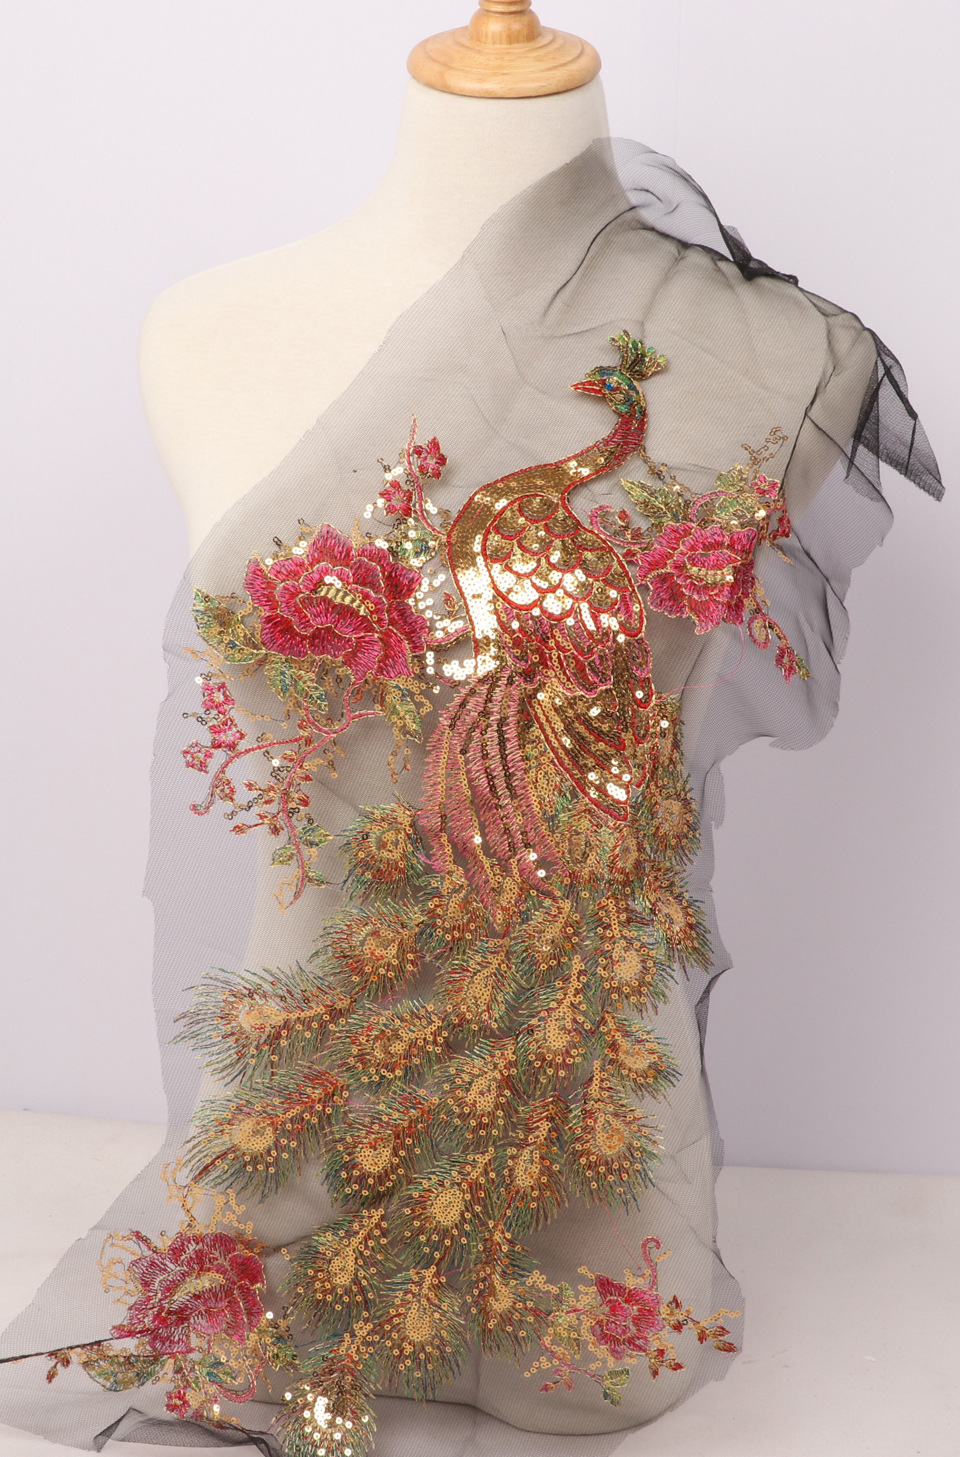 3D Applique Lace Embroidery Good Quality Embroidery Embroidered Green Peacock Applique Flowers